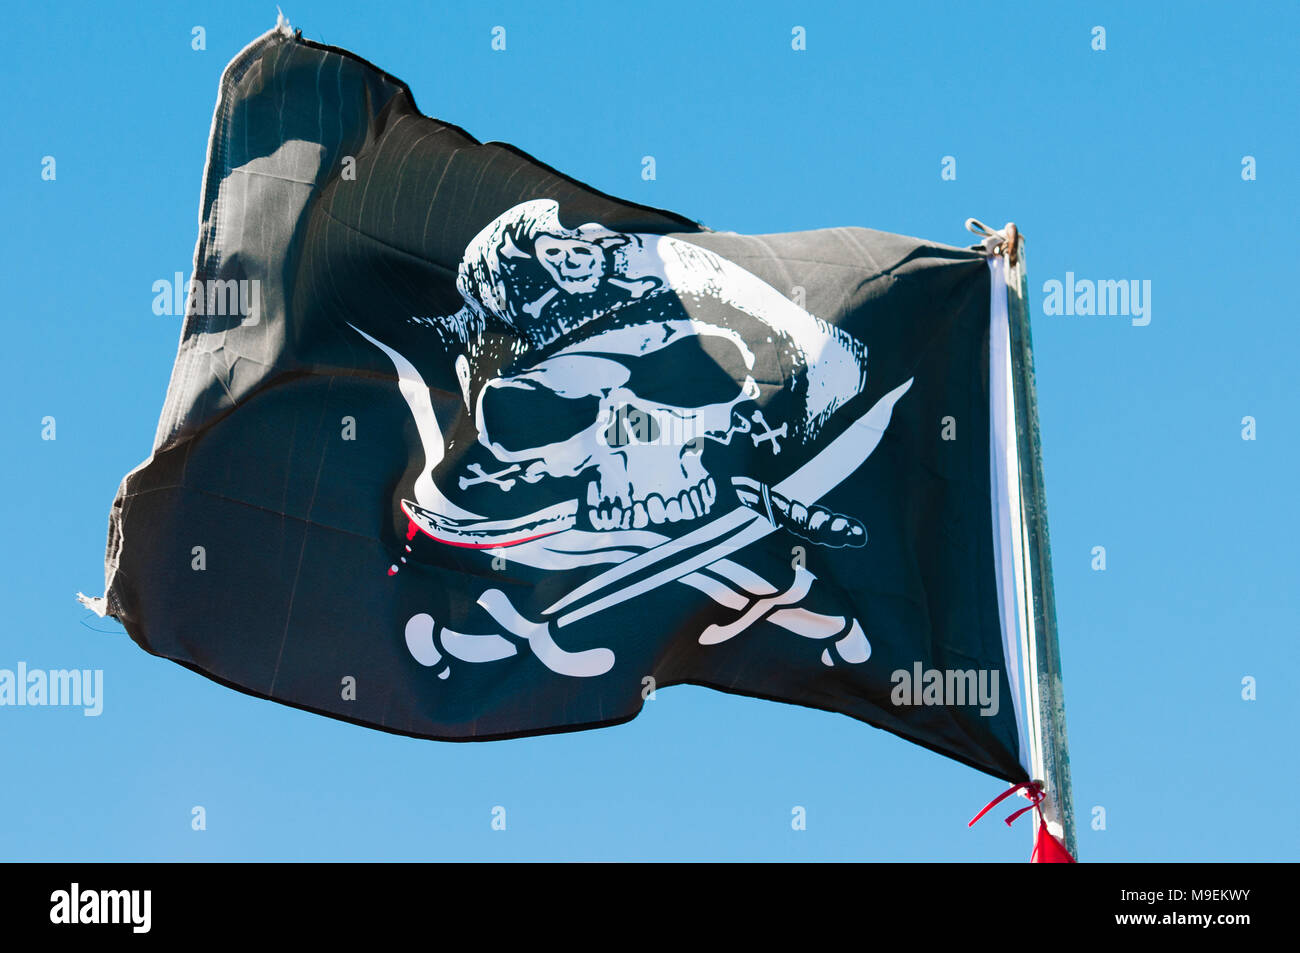 Black and white skull and crossbones pirate flag on a flagpole. - Stock Image